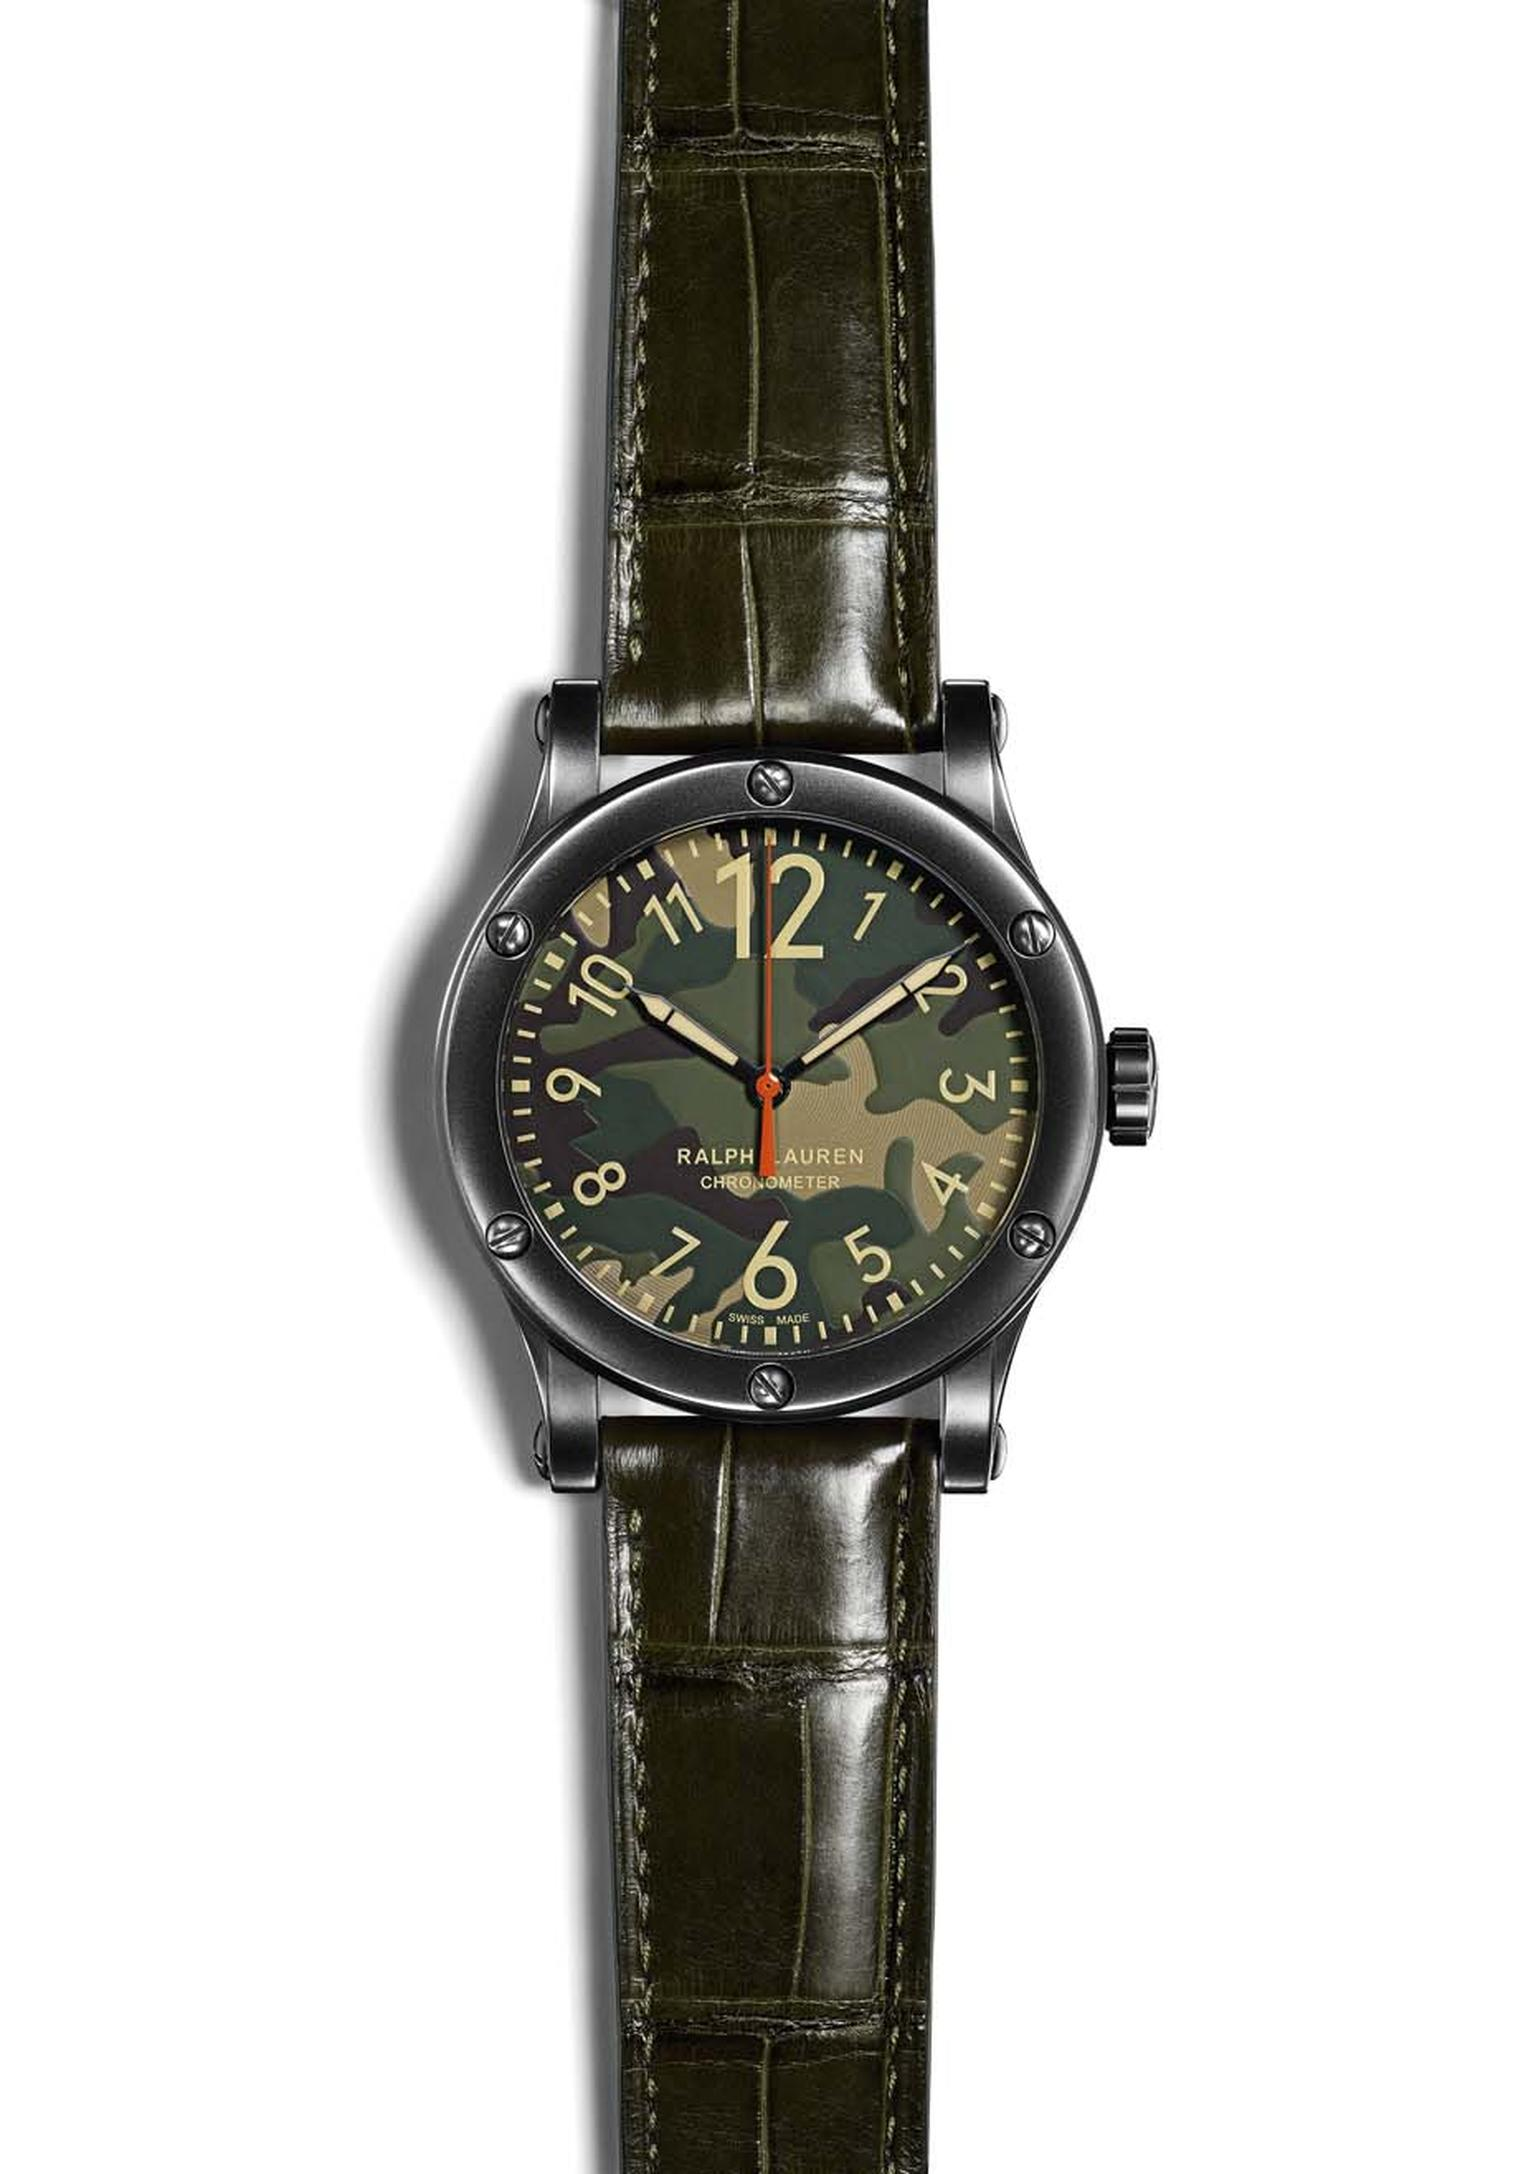 Ralph Lauren_Safari watches_Safari Camo watch.jpg